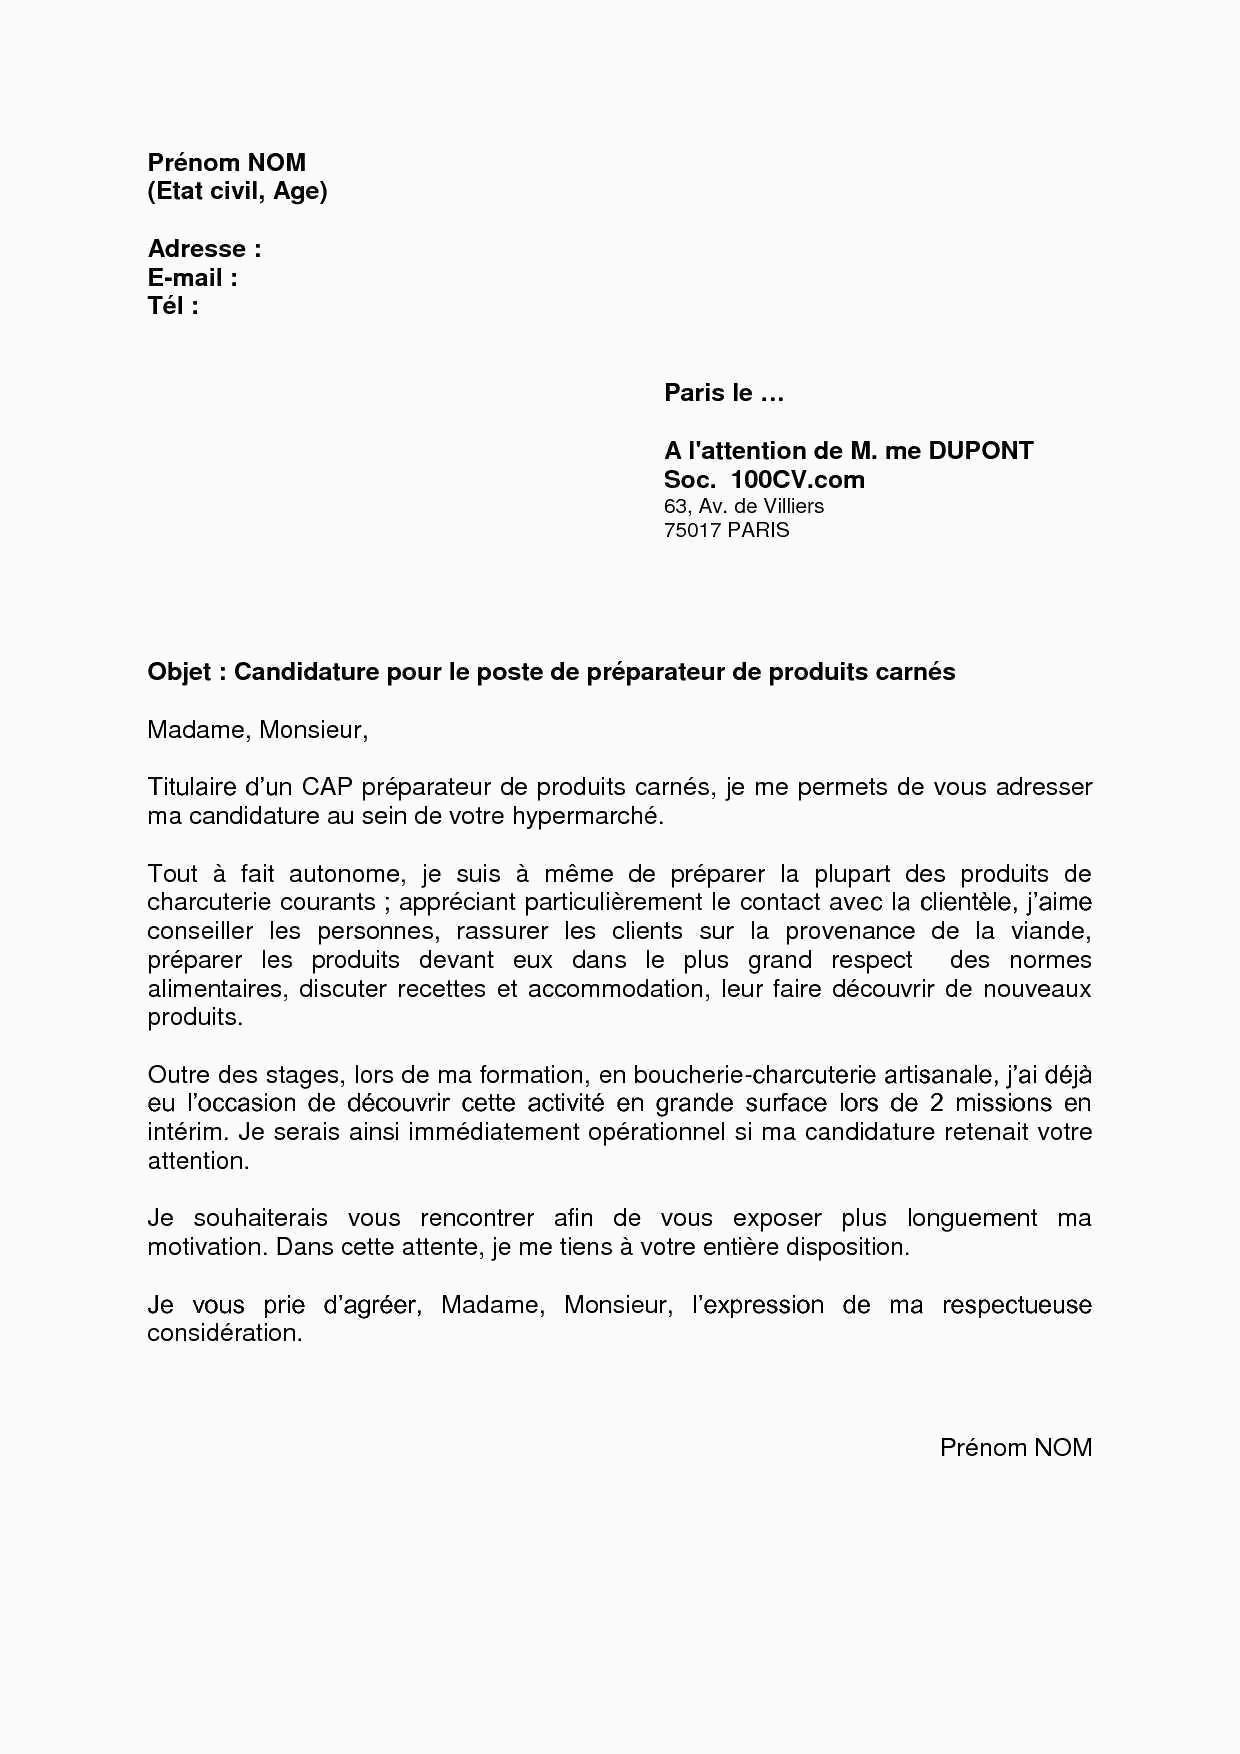 Lettre De Motivation Reconversion Professionnelle Accroche Cv Reconversion Professionnelle De Base Phrases D Accroche